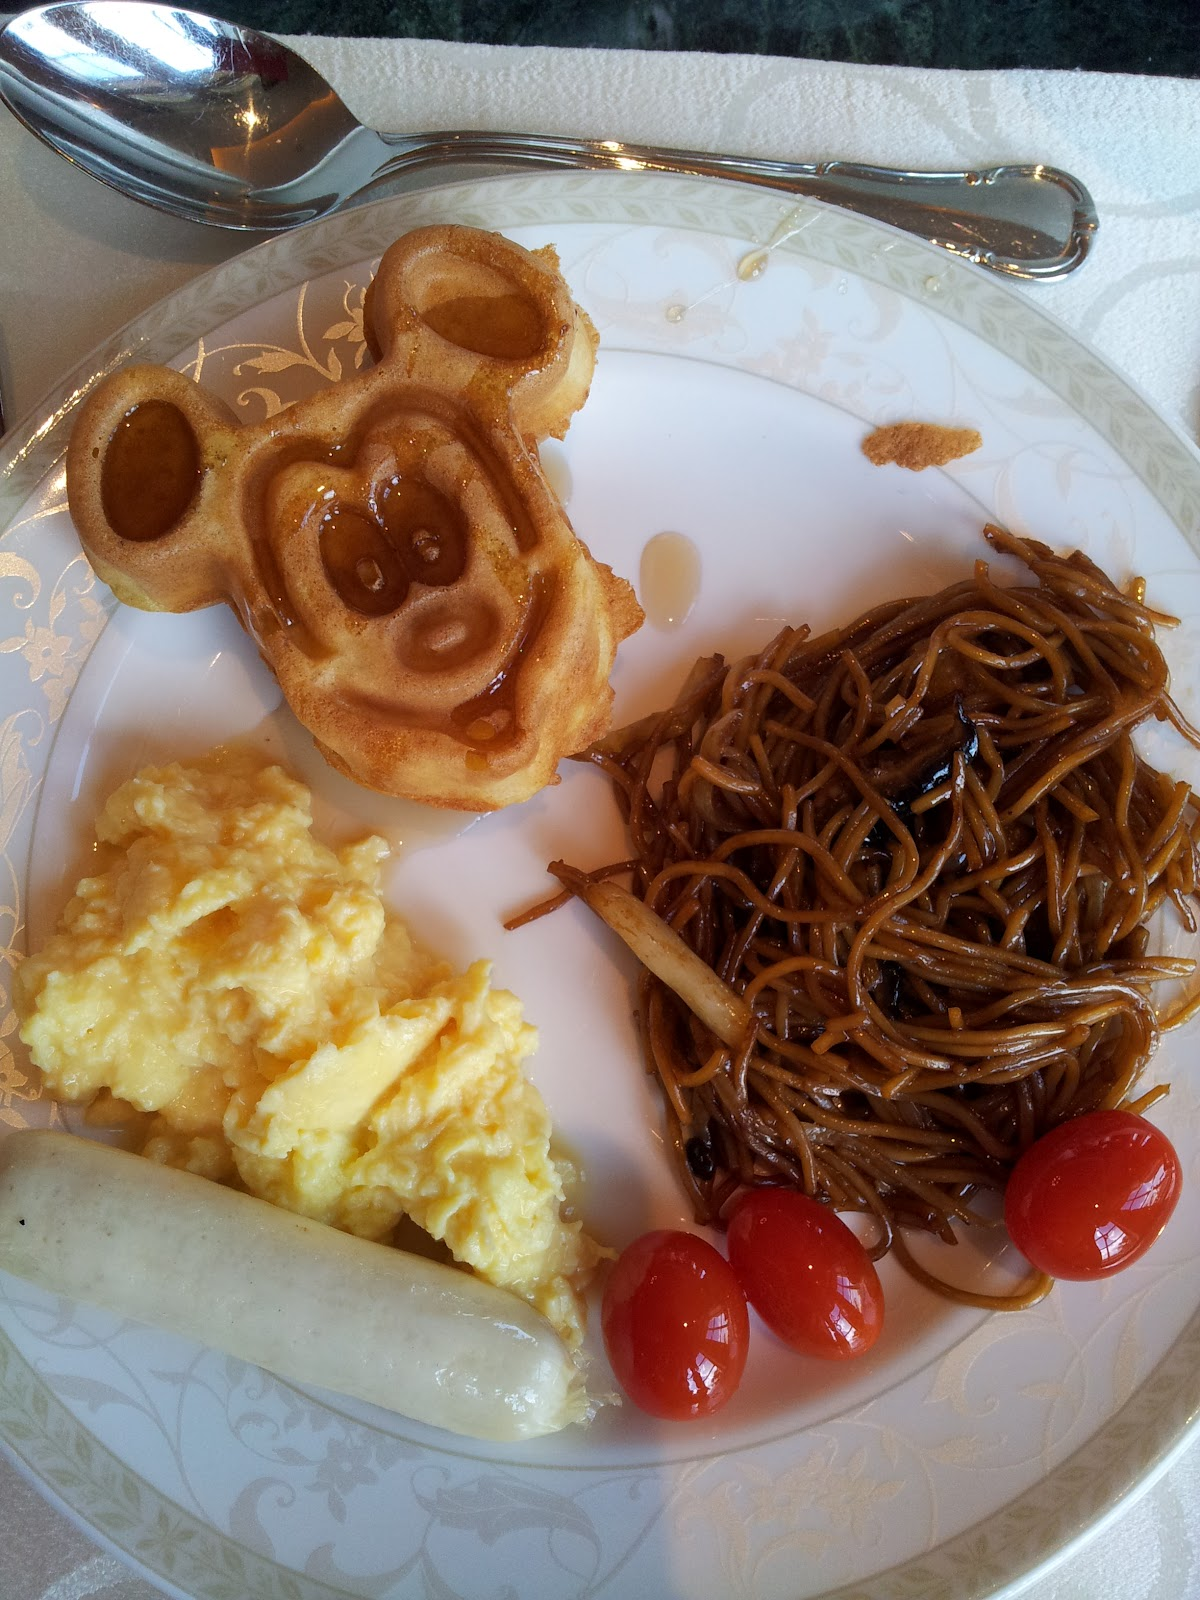 Bunnies\' Travel Diary!: HK Disneyland (Park and Hotel) 2012 - Our ...